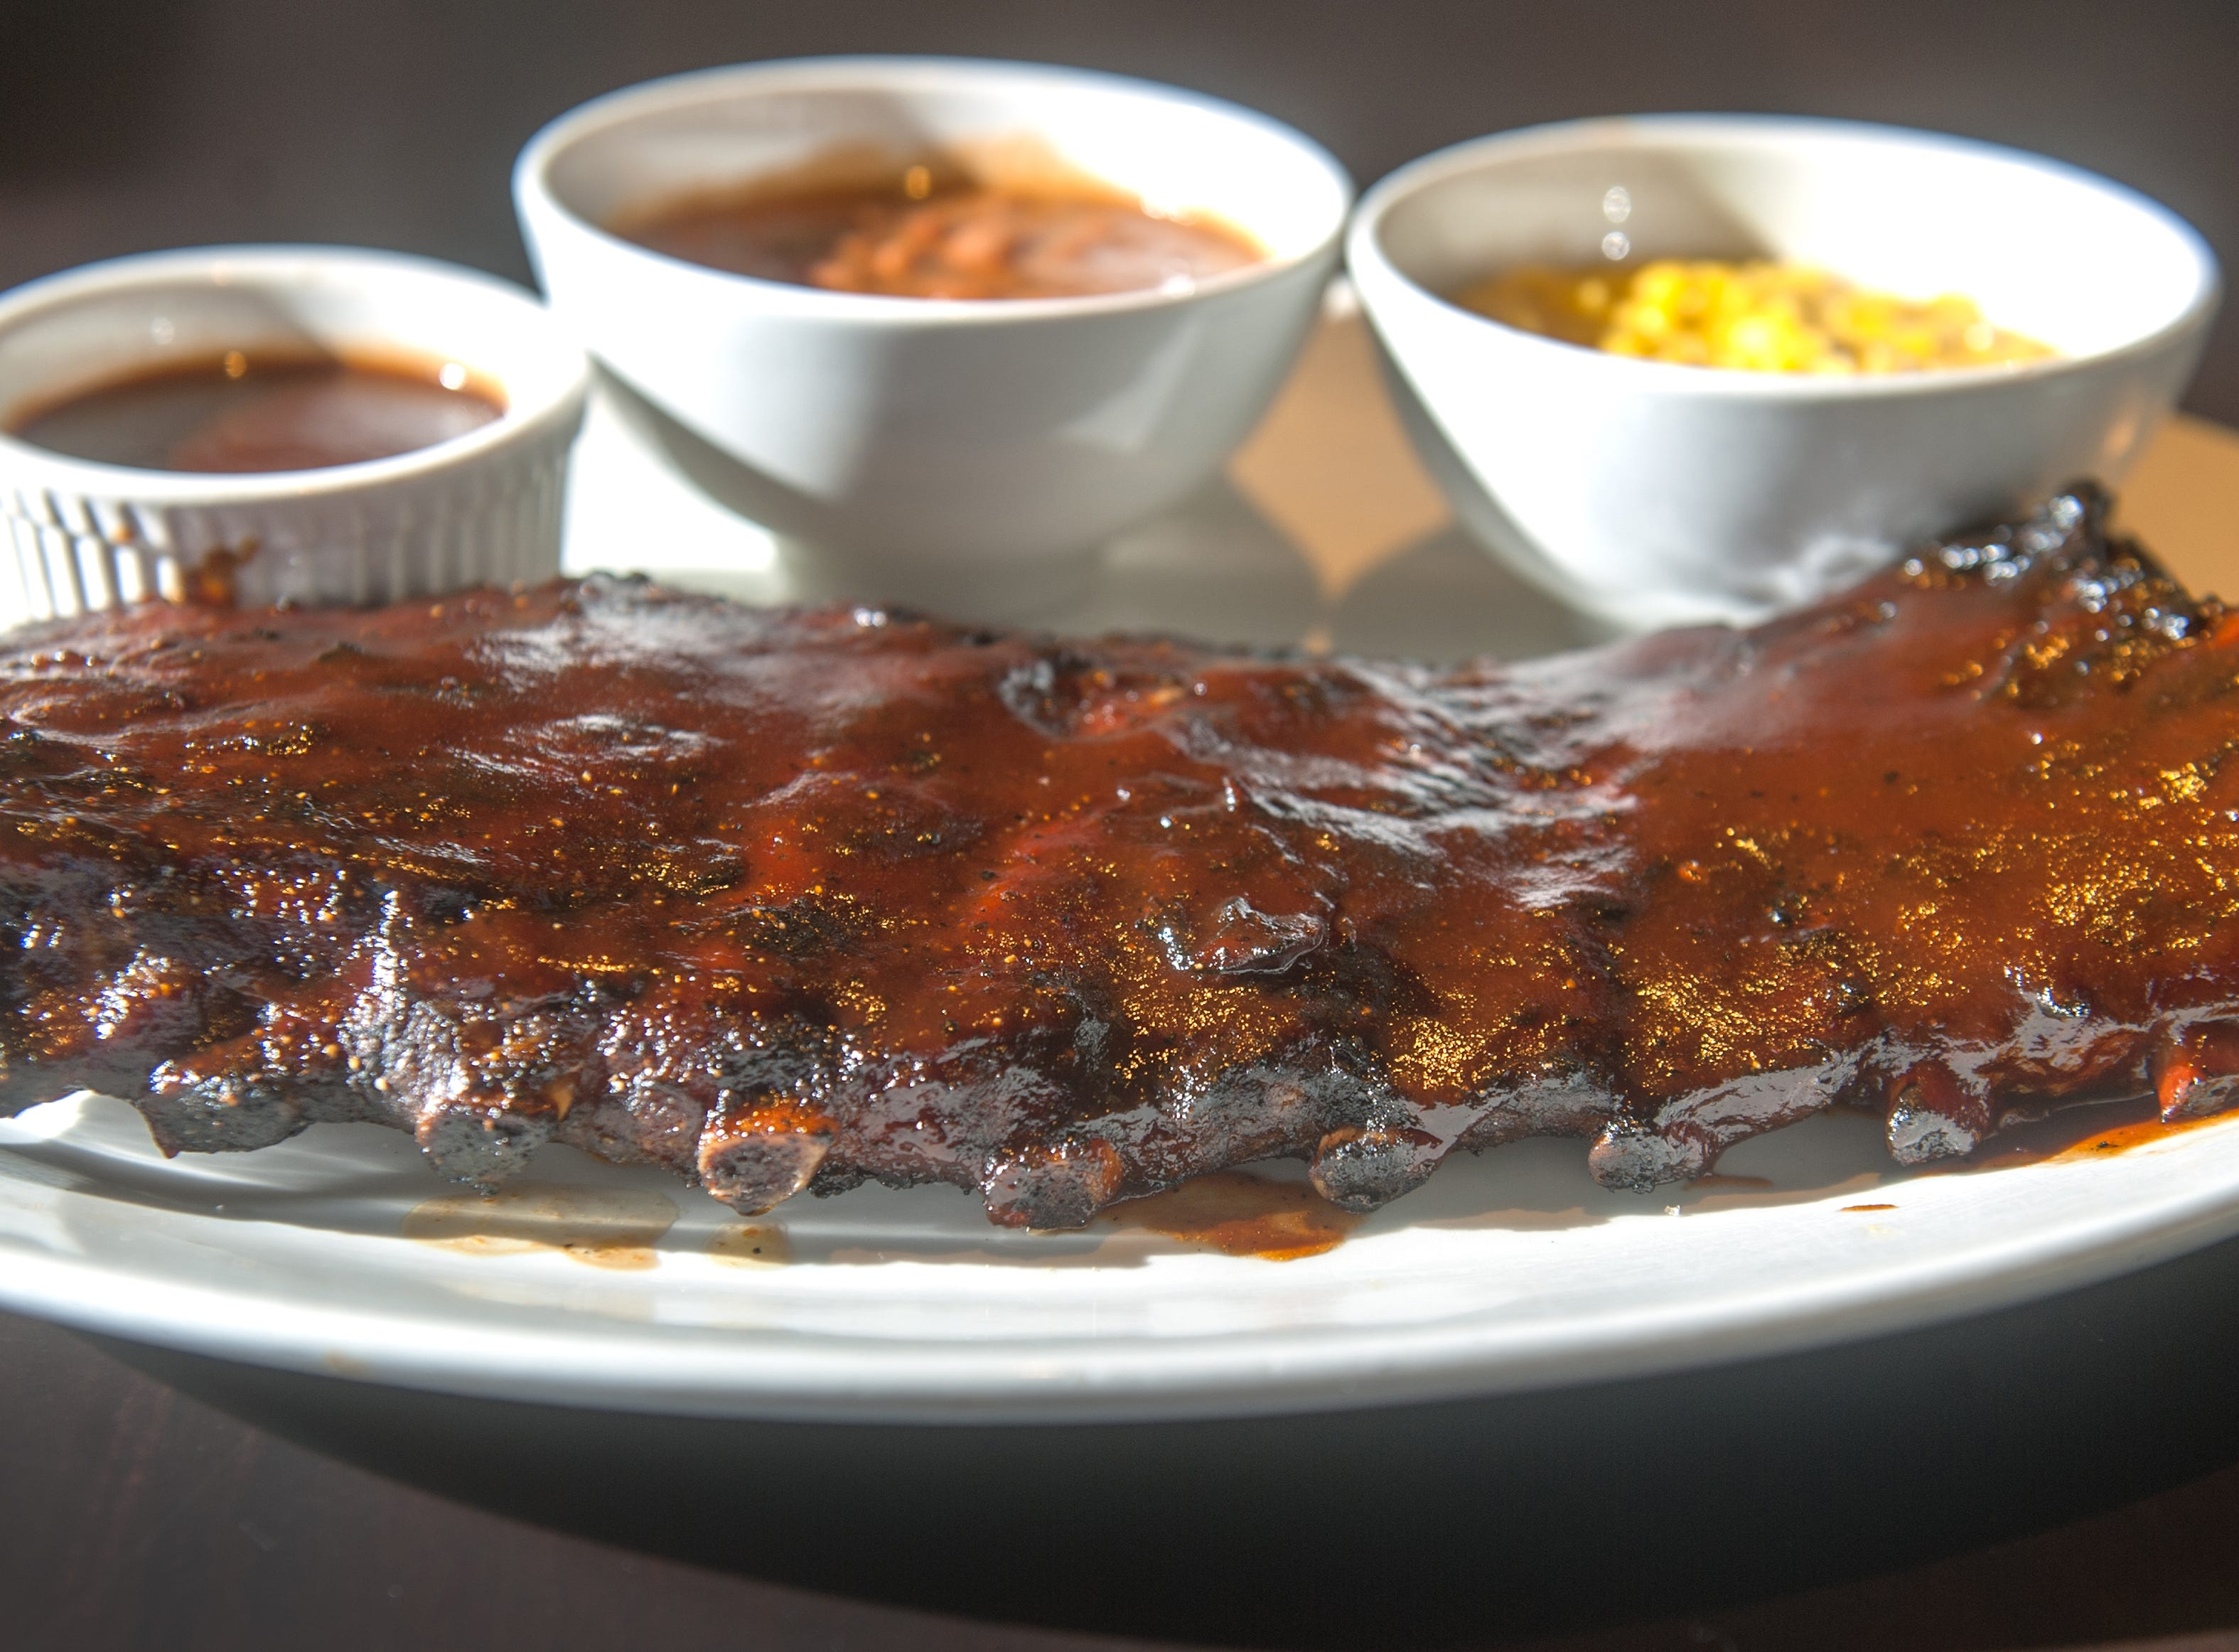 A full rack of St. Louis-style pork spare ribs with spicy barbecue sauce, creamed corn and barbecue pinto beans at Yard House.